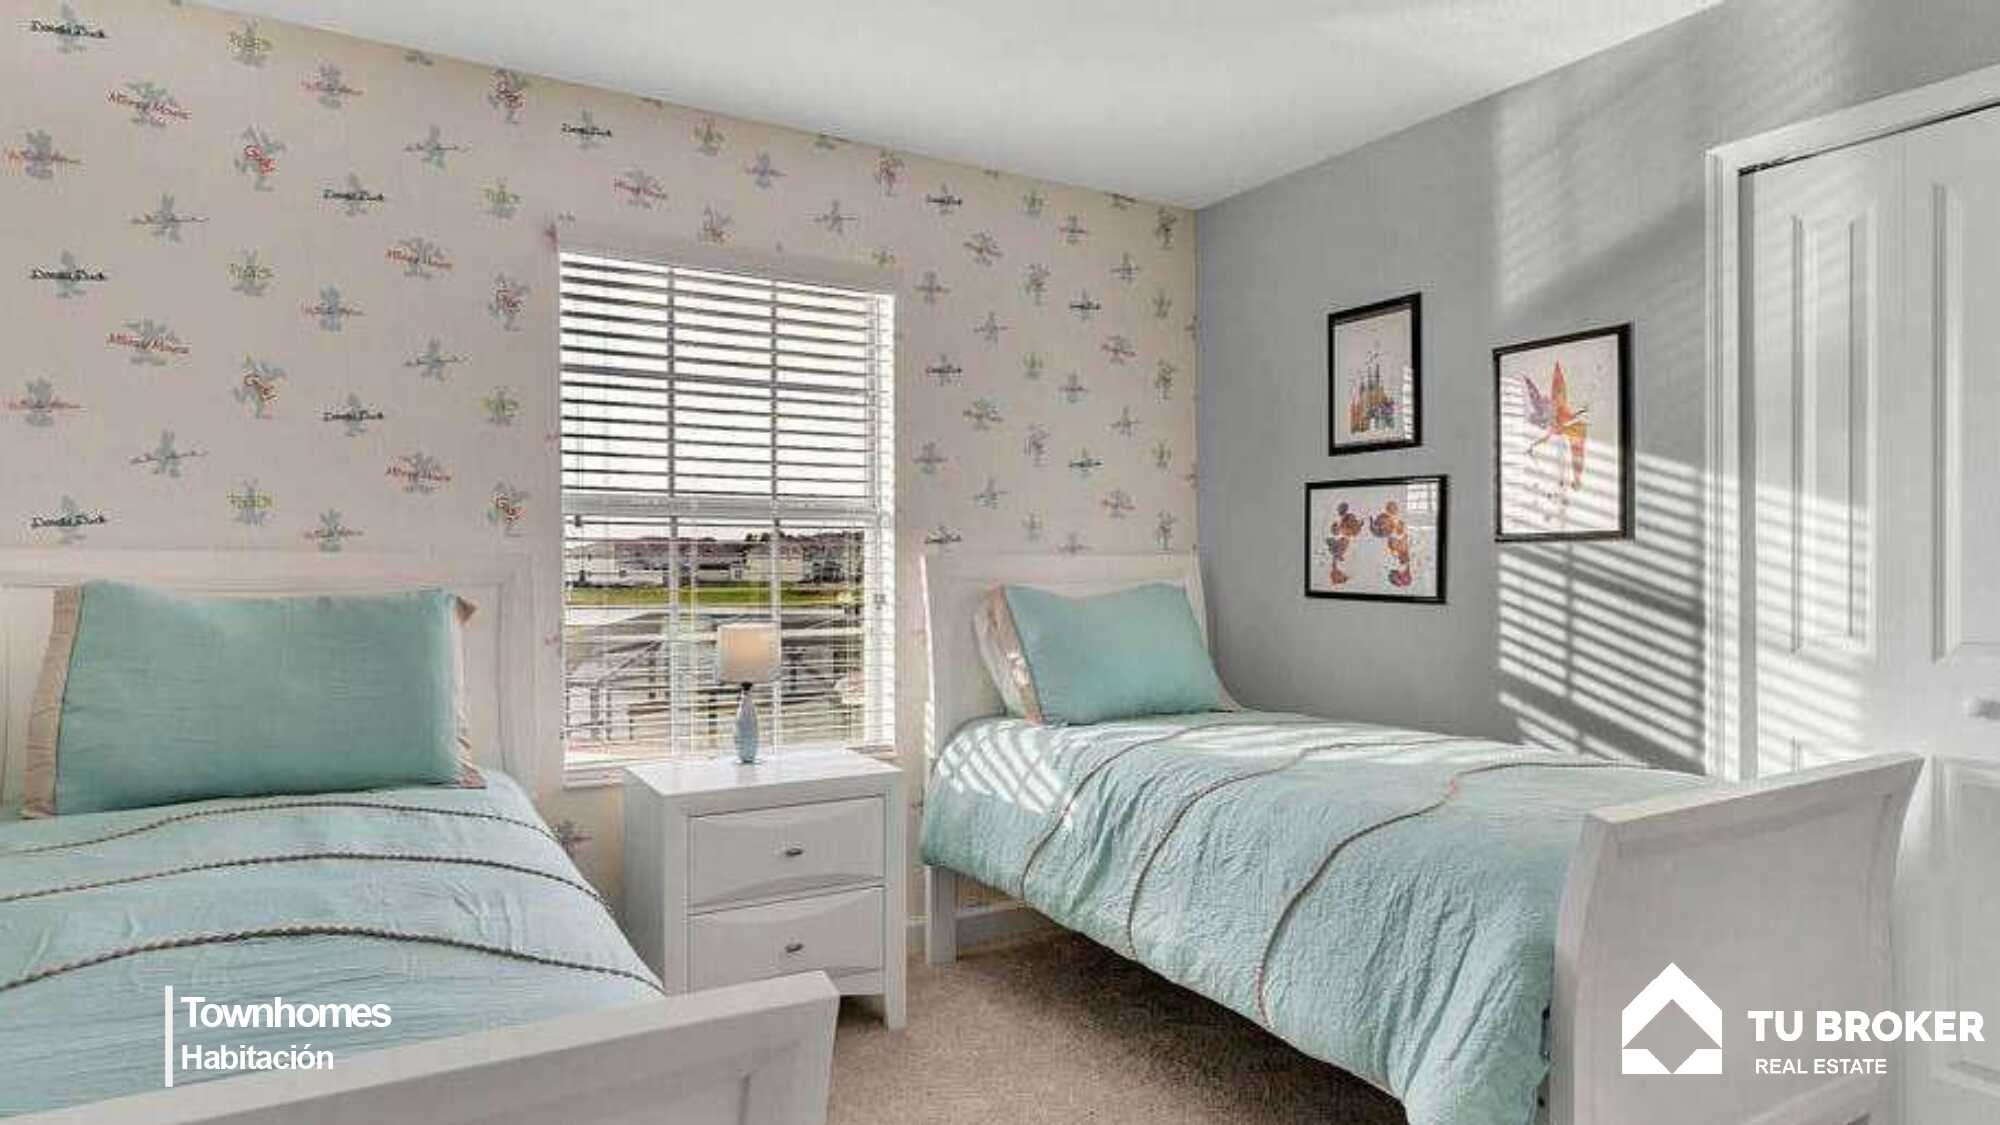 pag-orla-sl-townhomes_compressed-1_page-0025_optimized